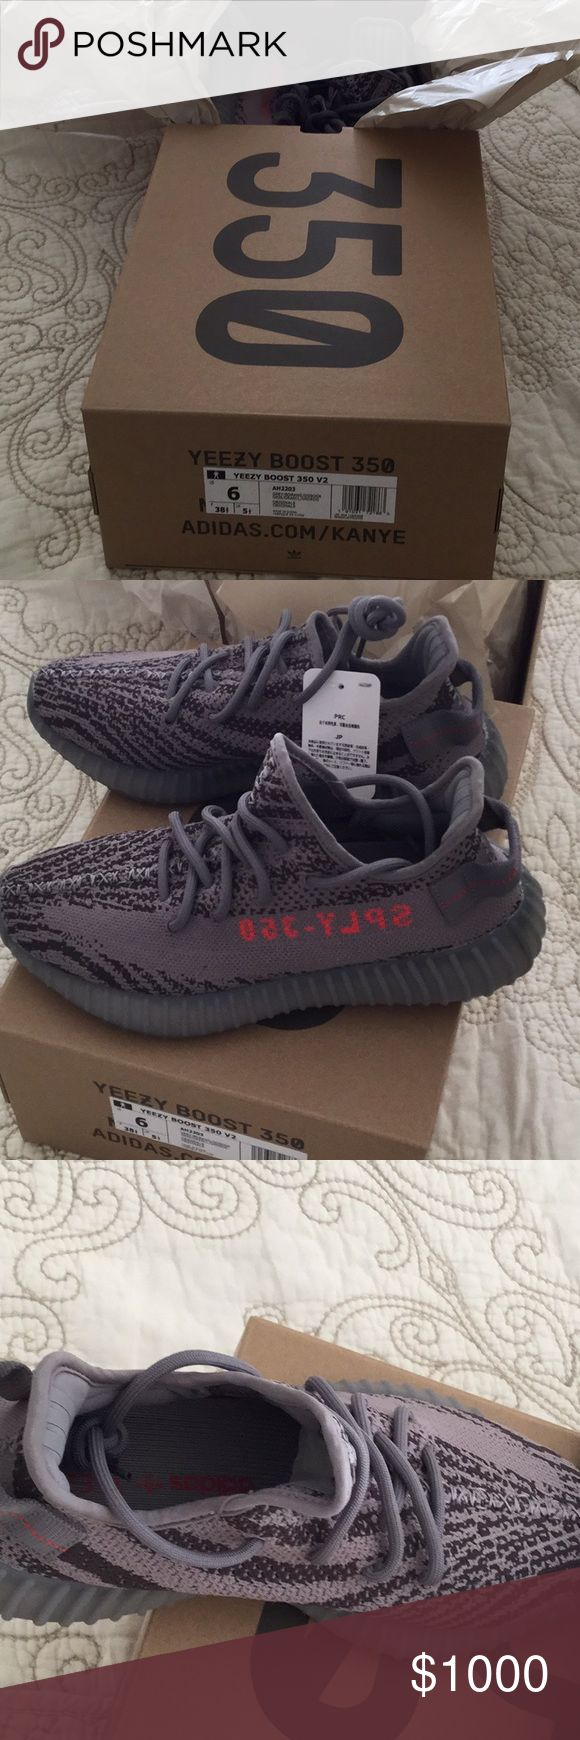 Yeezy sneakers Excellent condition. New, took them out the box to take picture. Price is negotiable!! Yeezy Shoes Sneakers